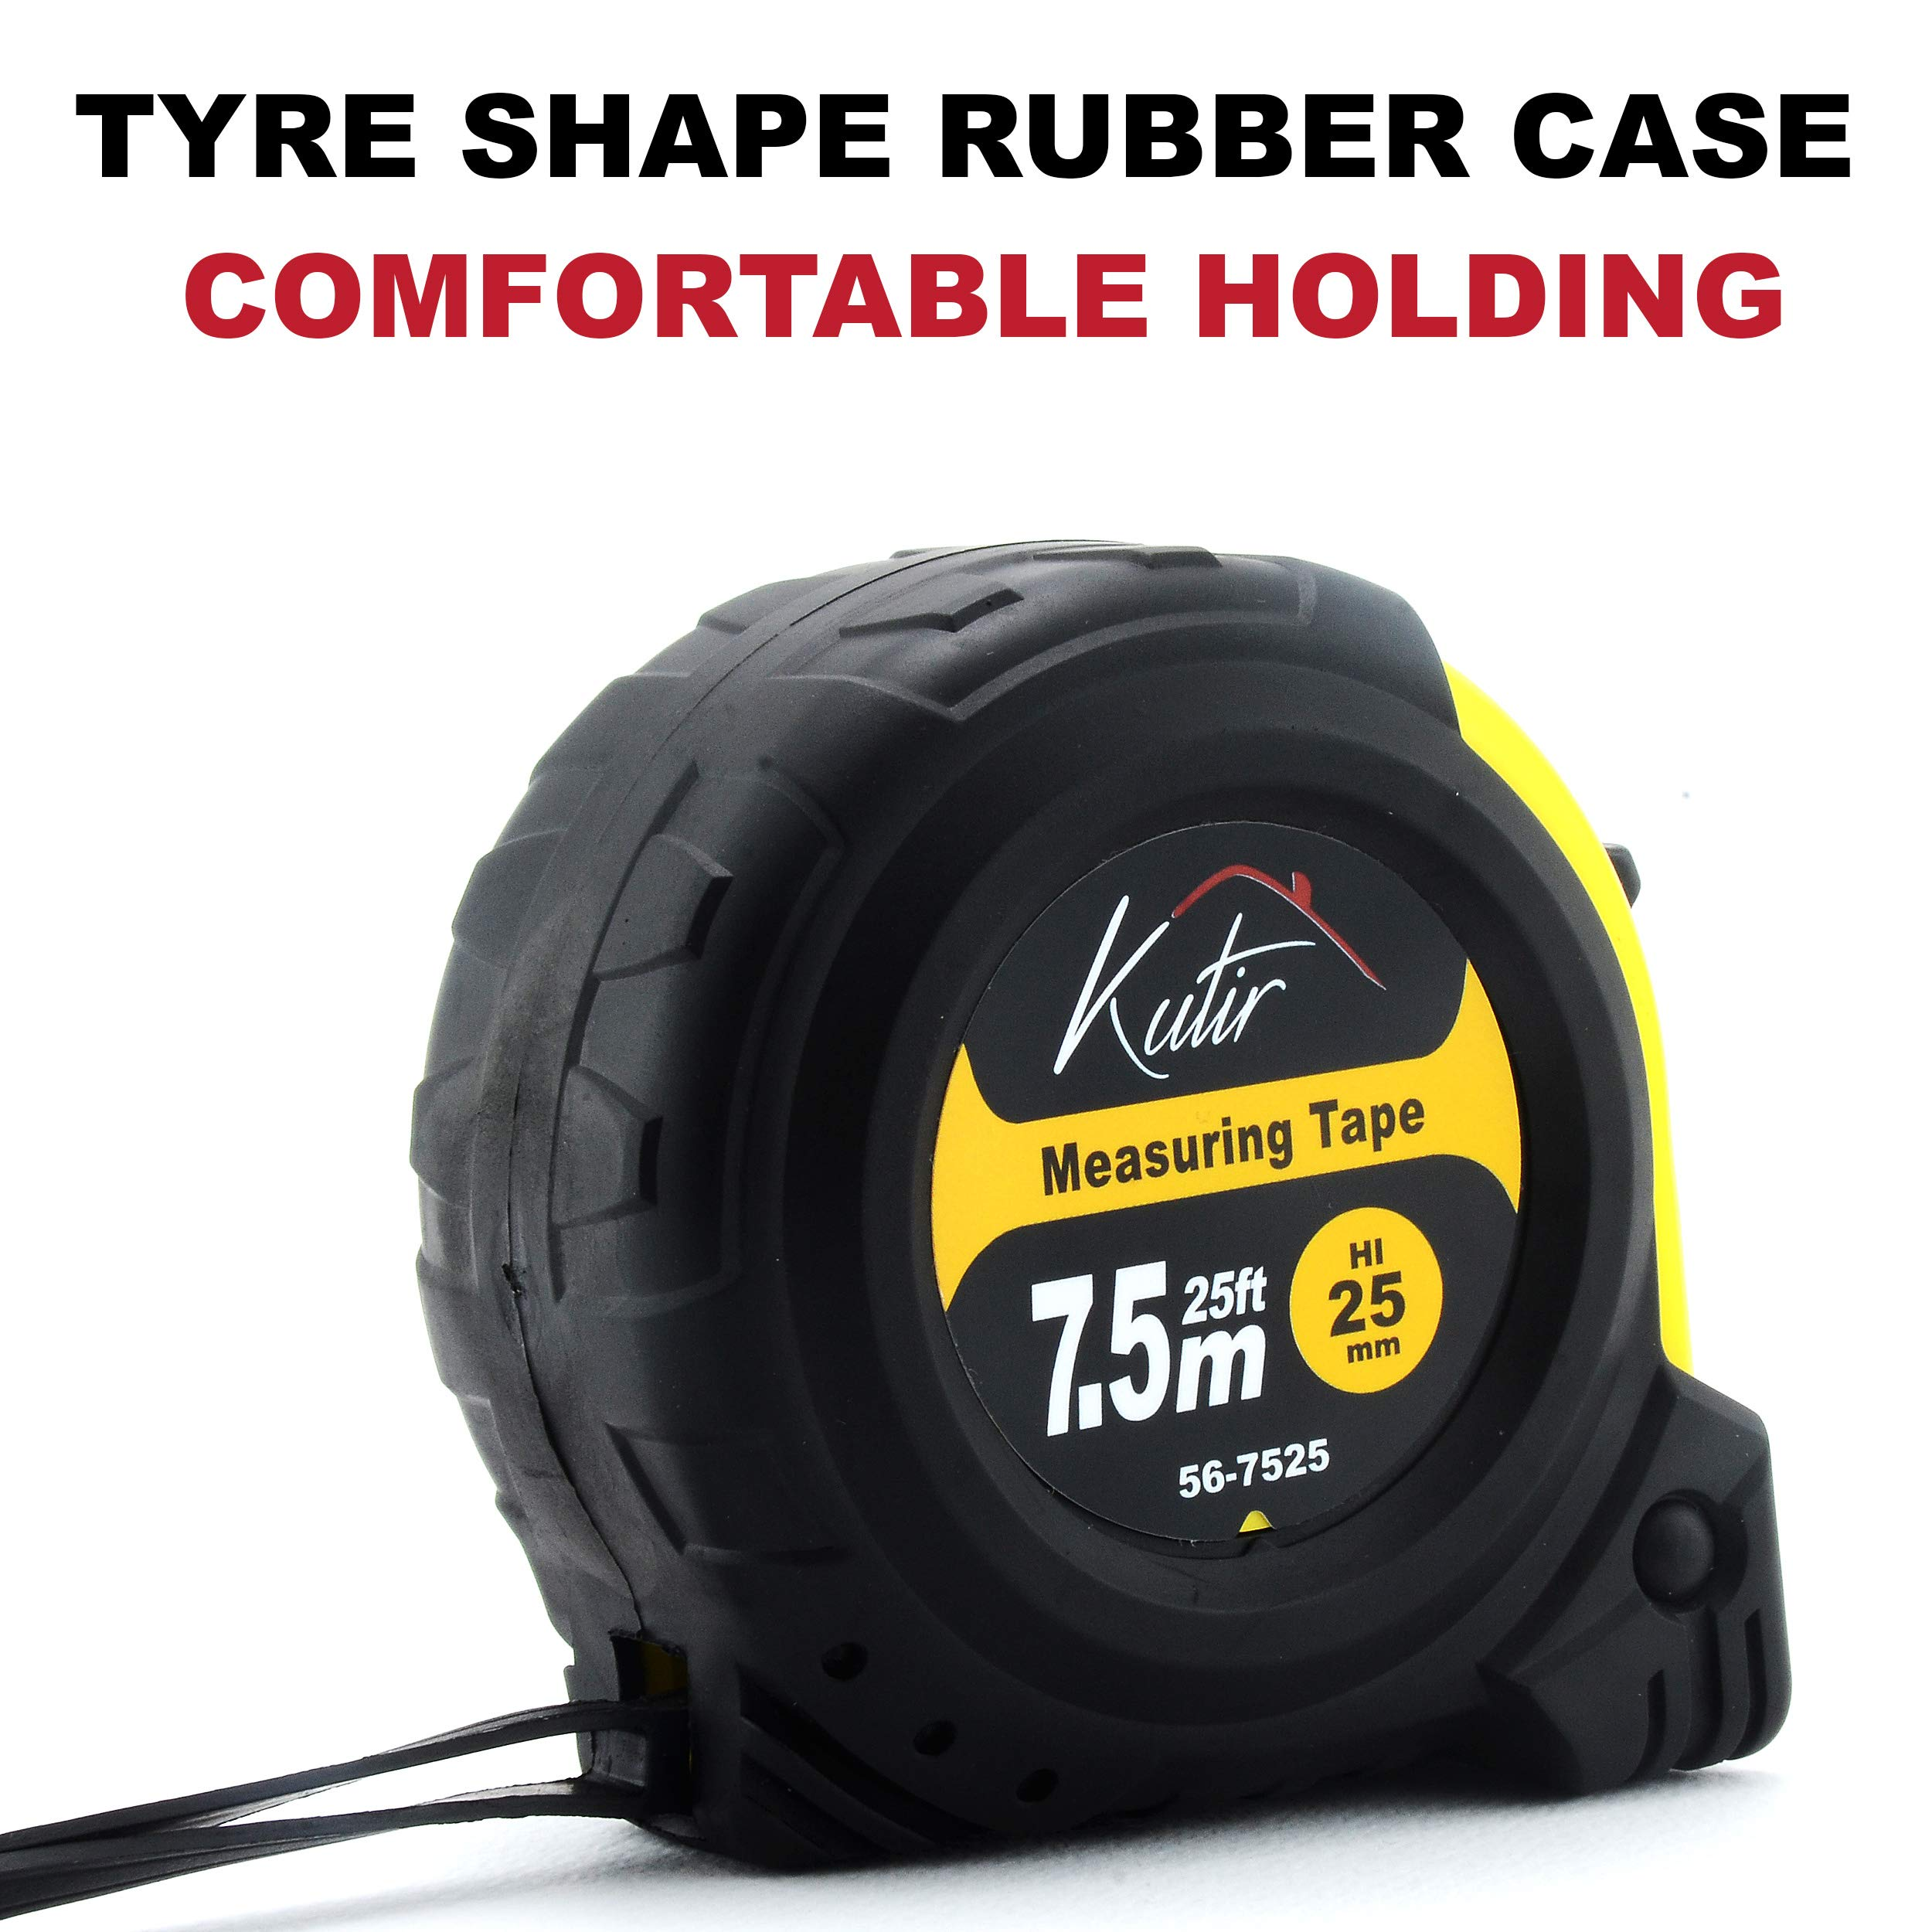 Measuring Tape Measure By Kutir - EASY TO READ 25 Foot BOTH SIDE DUAL RULER, Retractable, STURDY, Heavy Duty, MAGNETIC HOOK, Metric, Inches and Imperial Measurement, SHOCK ABSORBENT Solid Rubber Case by Kutir (Image #4)